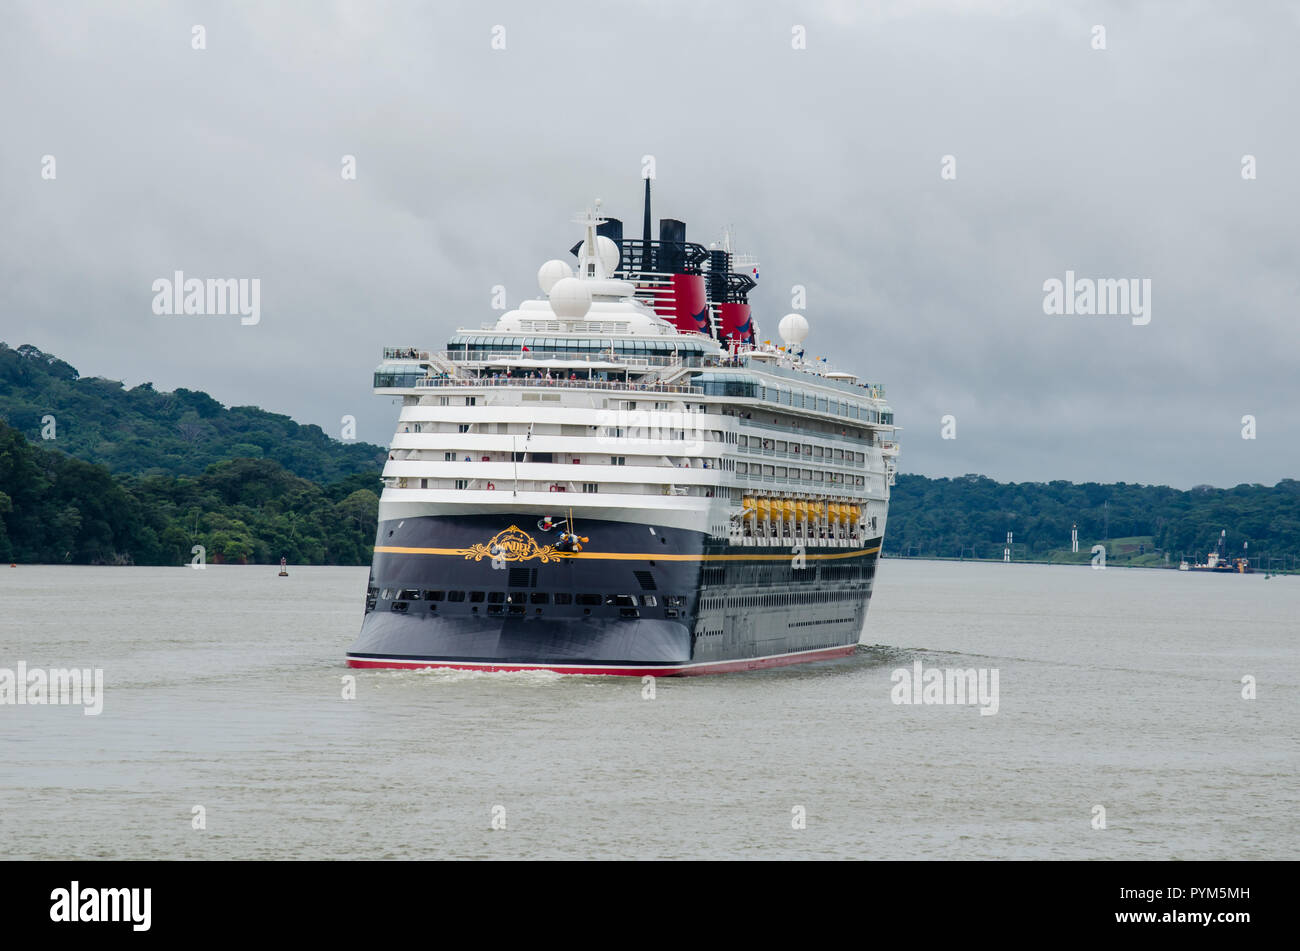 Panama Canal cruise season 2018 - 2019 is ongoing.  The picture shows the Disney Wonder transiting the waterway at the end of Gaillard Cut in Gamboa Stock Photo